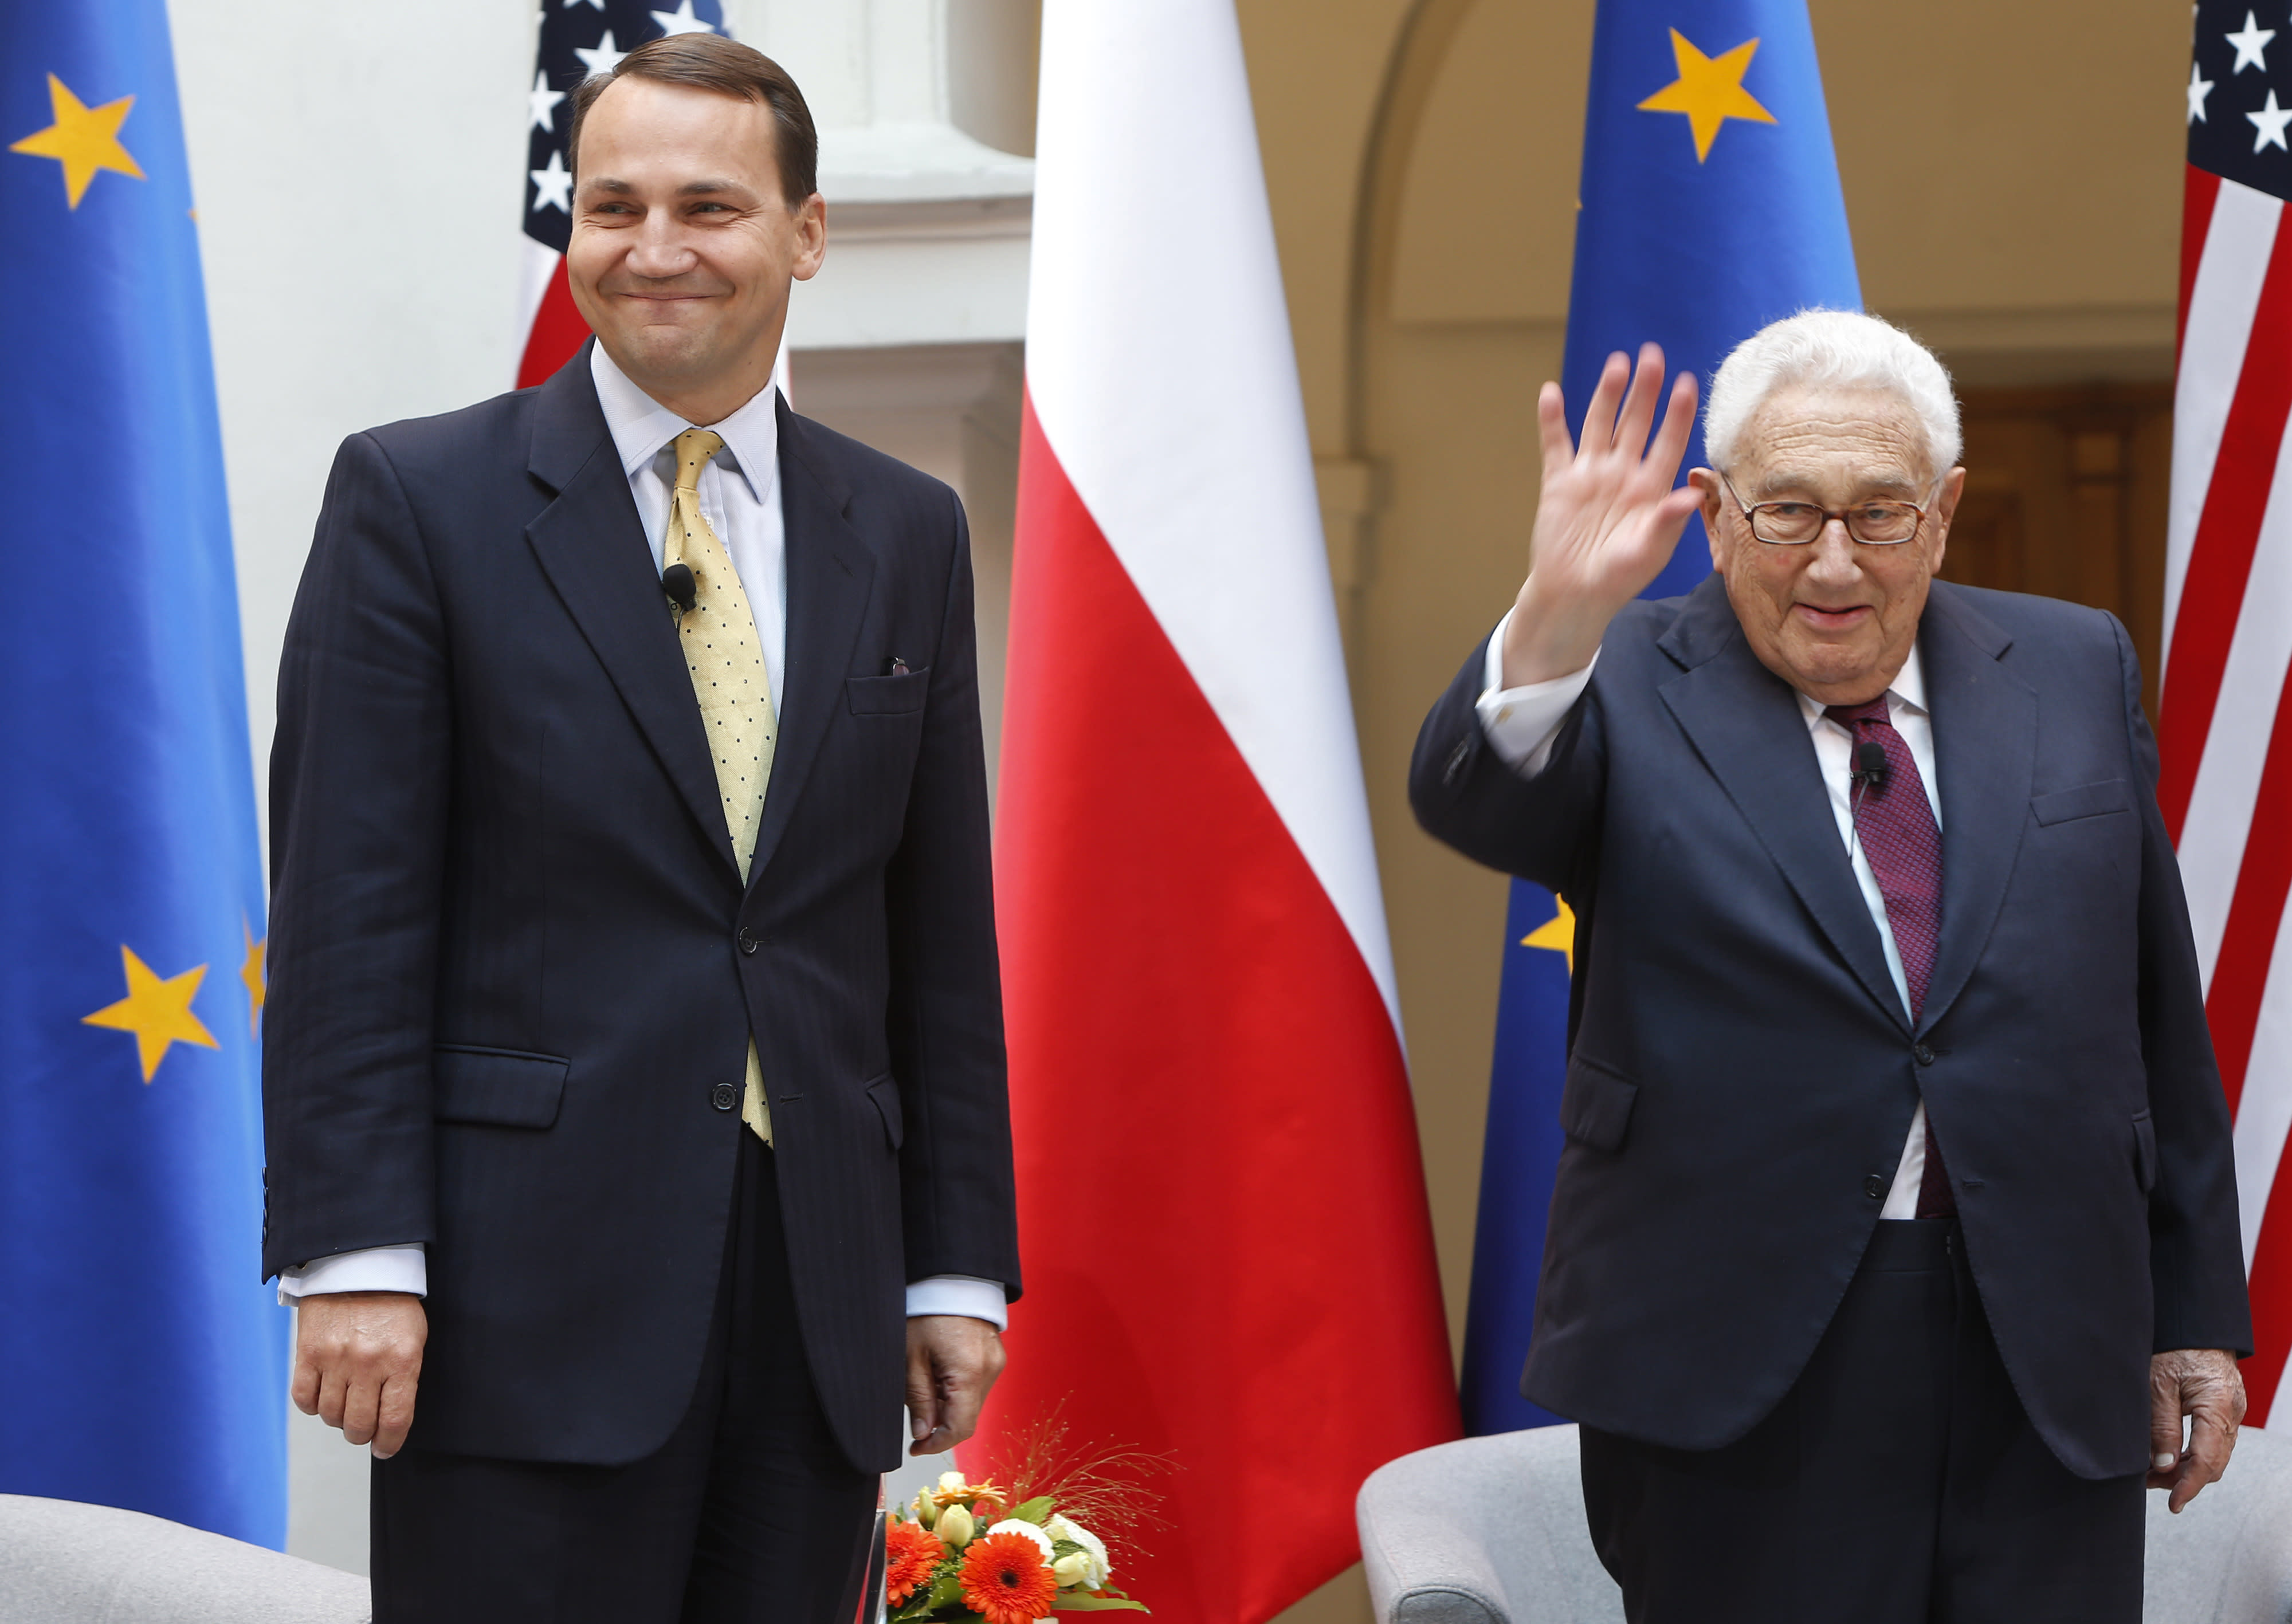 "Former U.S. Secretary of State Henry Kissinger, right, and Poland's Foreign Minister Radek Sikorski, left, ahead of discussions on Europe's strategic challenges in Warsaw, Poland, on Wednesday June 27, 2012. Kissinger was credited many years ago with asking whom he should call if he wants to call Europe. He told his Warsaw audience, to laughter: ""I am not sure I actually said it. But it's a good statement so why not take credit for it?"" He went on to say that that Europe today appears more unified due to the European Union but still lacks a common strategy. ""Even if a telephone exists and even if they answered it, the answer is not always very clear,"" Kissinger said. (AP Photo/Czarek Sokolowski)"